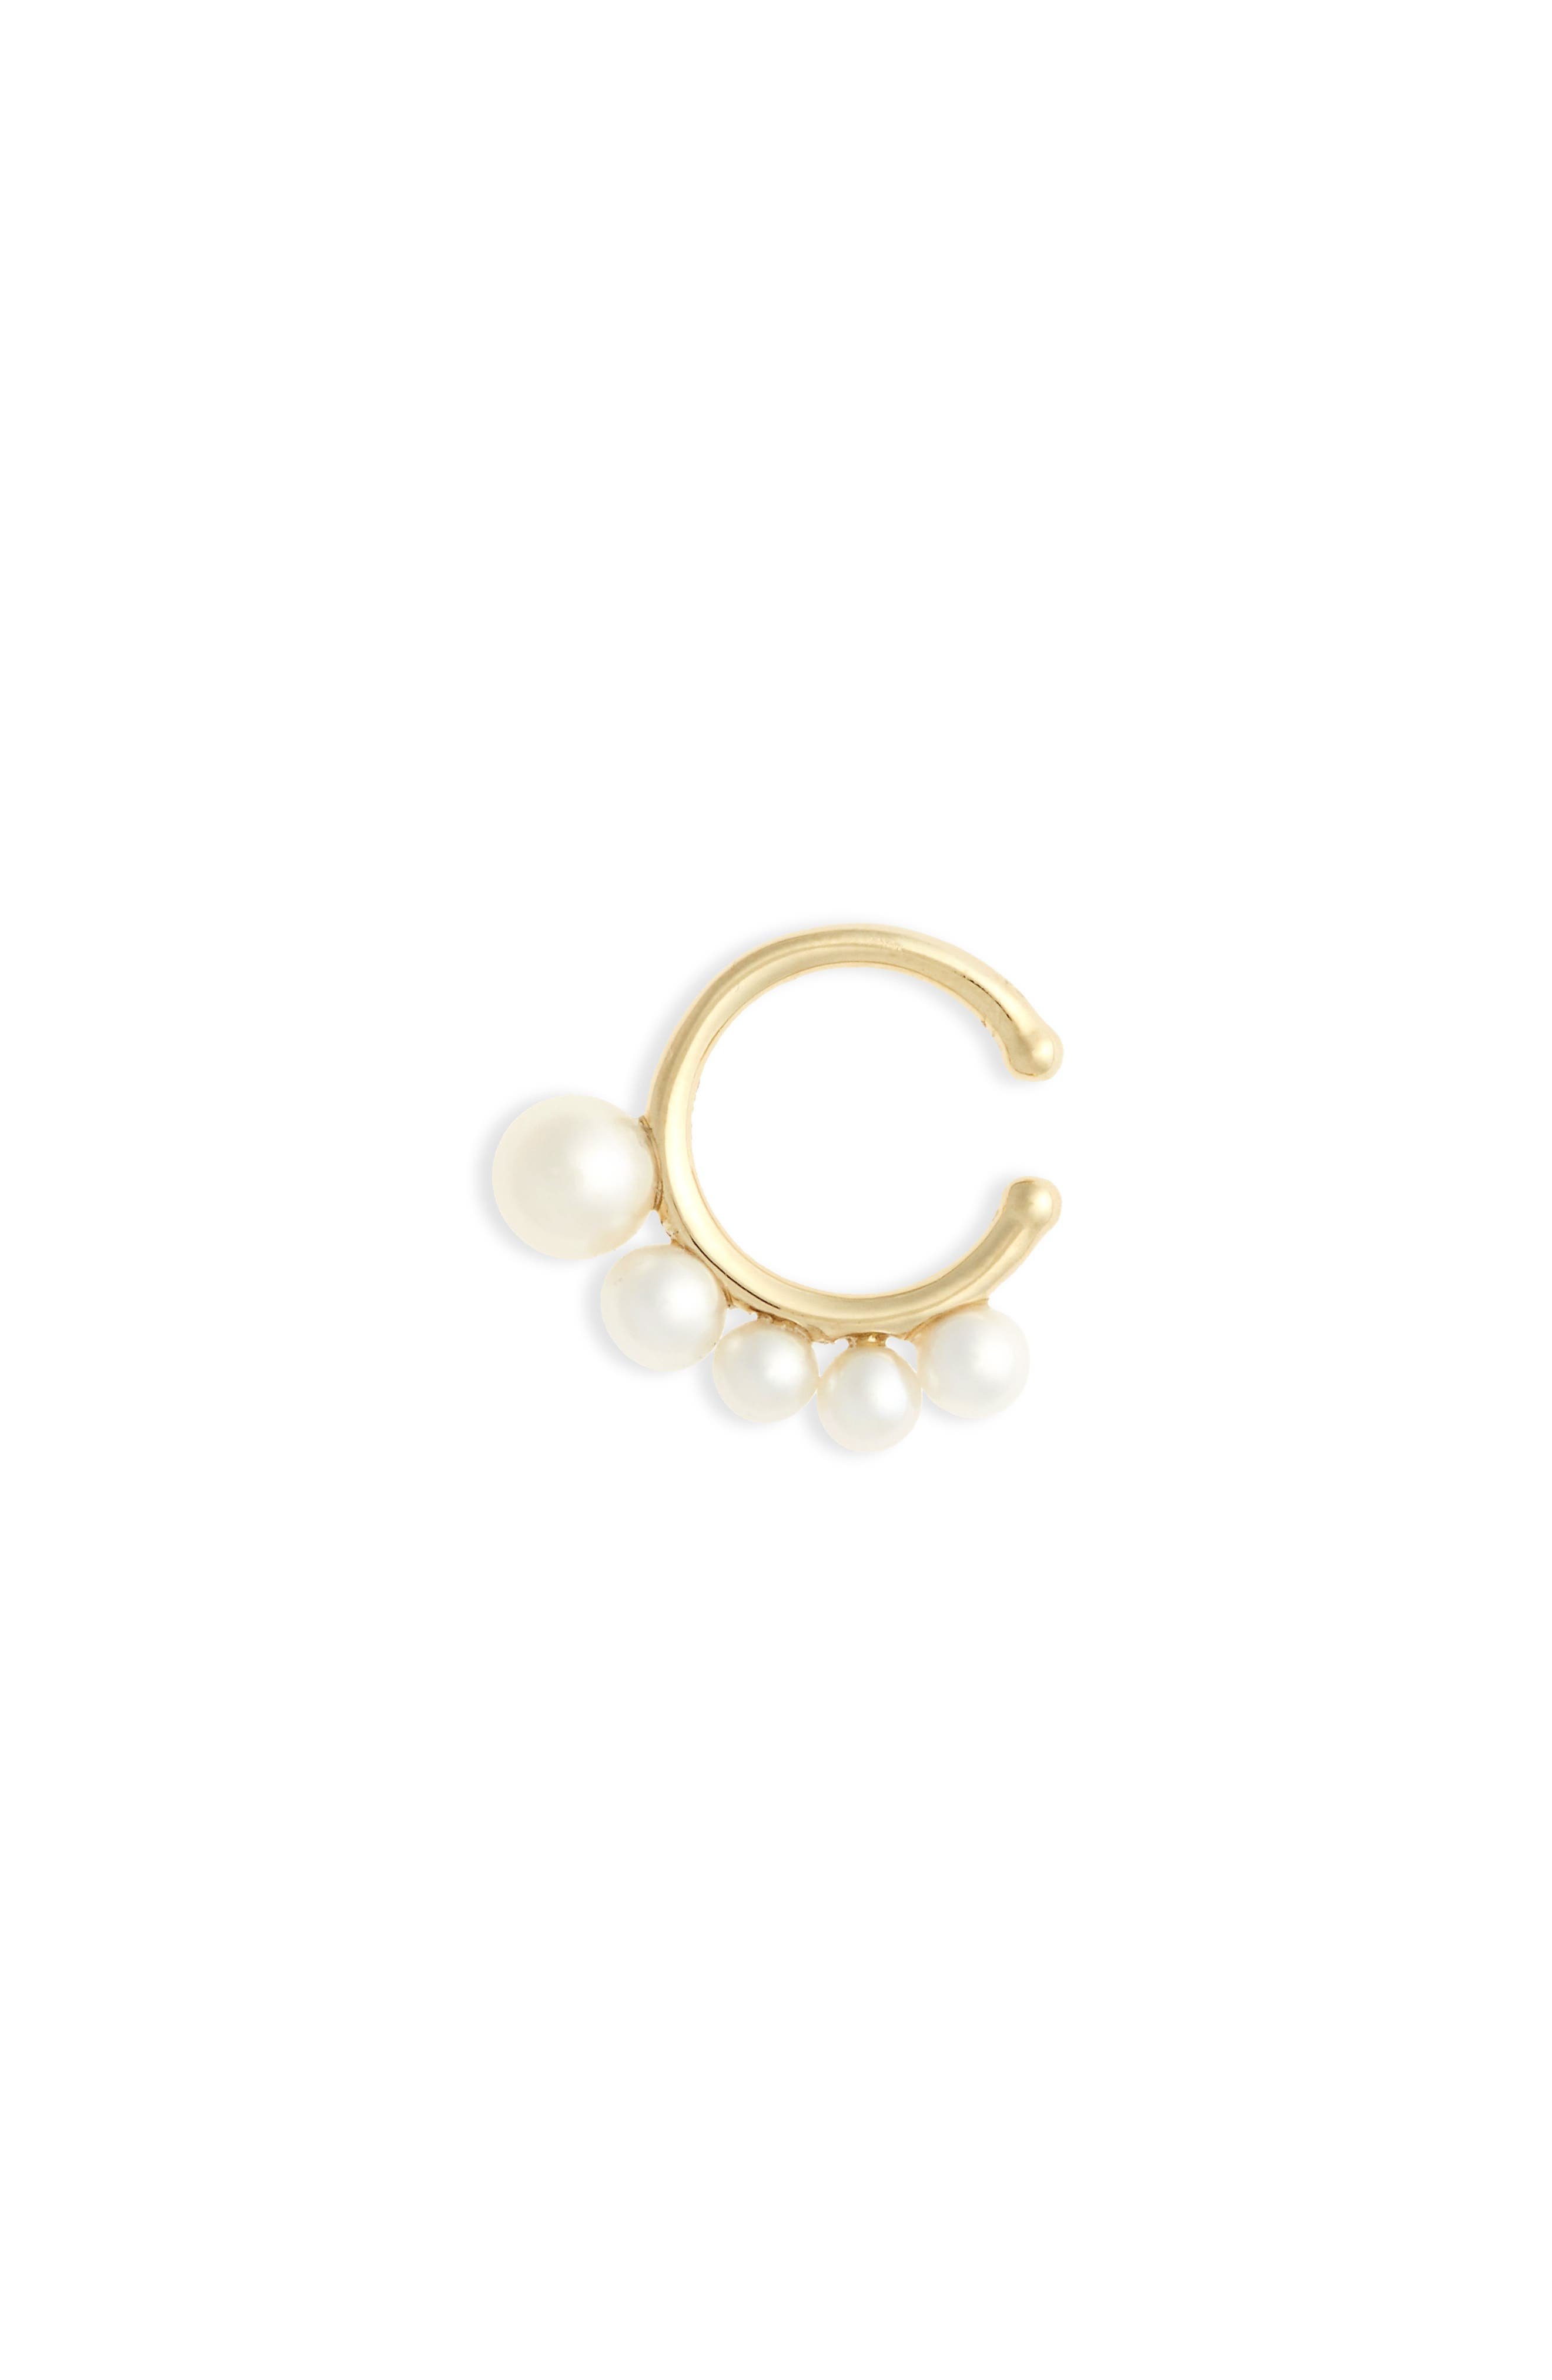 Sea of Beauty Graduated Pearl Ear Cuff,                         Main,                         color, YELLOW GOLD/ WHITE PEARL